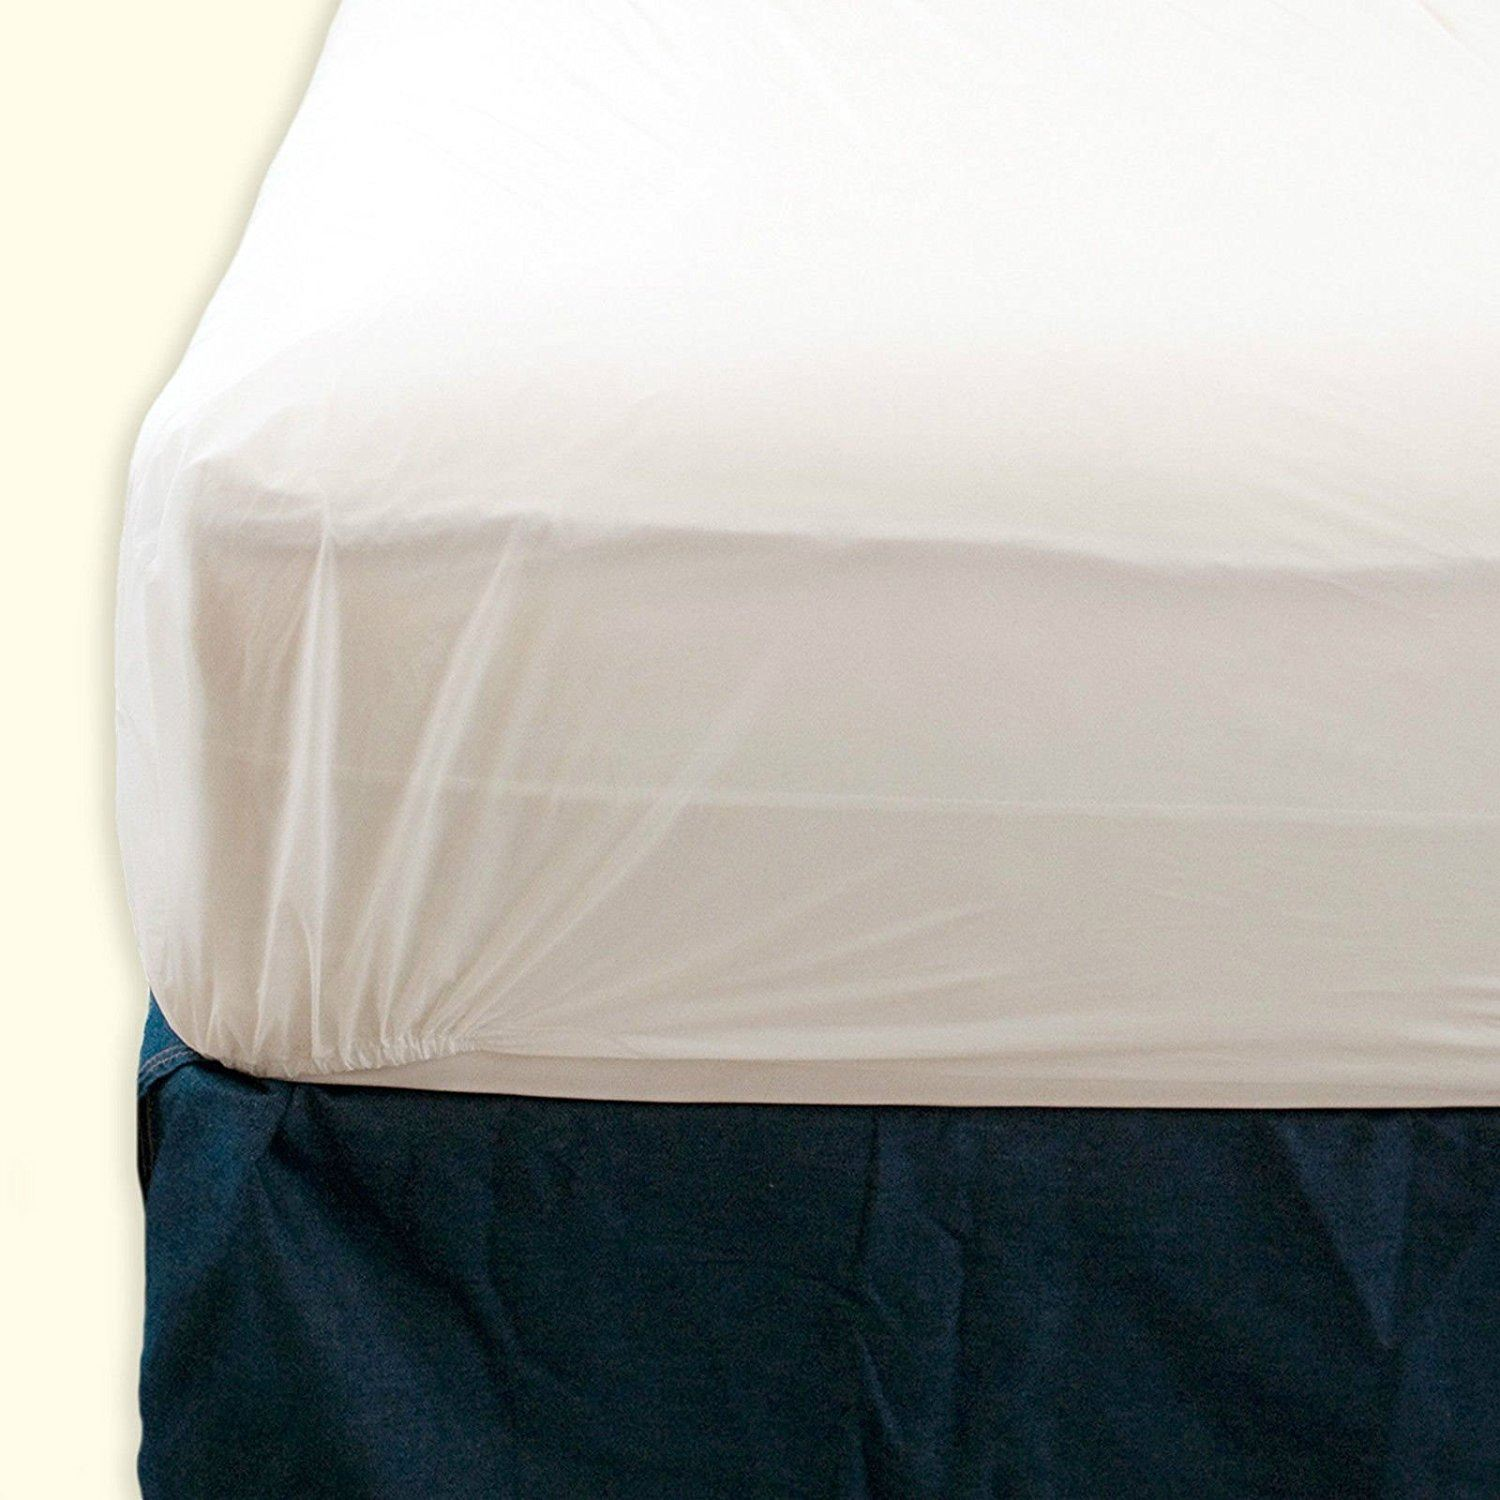 NEW PLASTIC MATTRESS PROTECTOR BED WETTING SHEET COVER